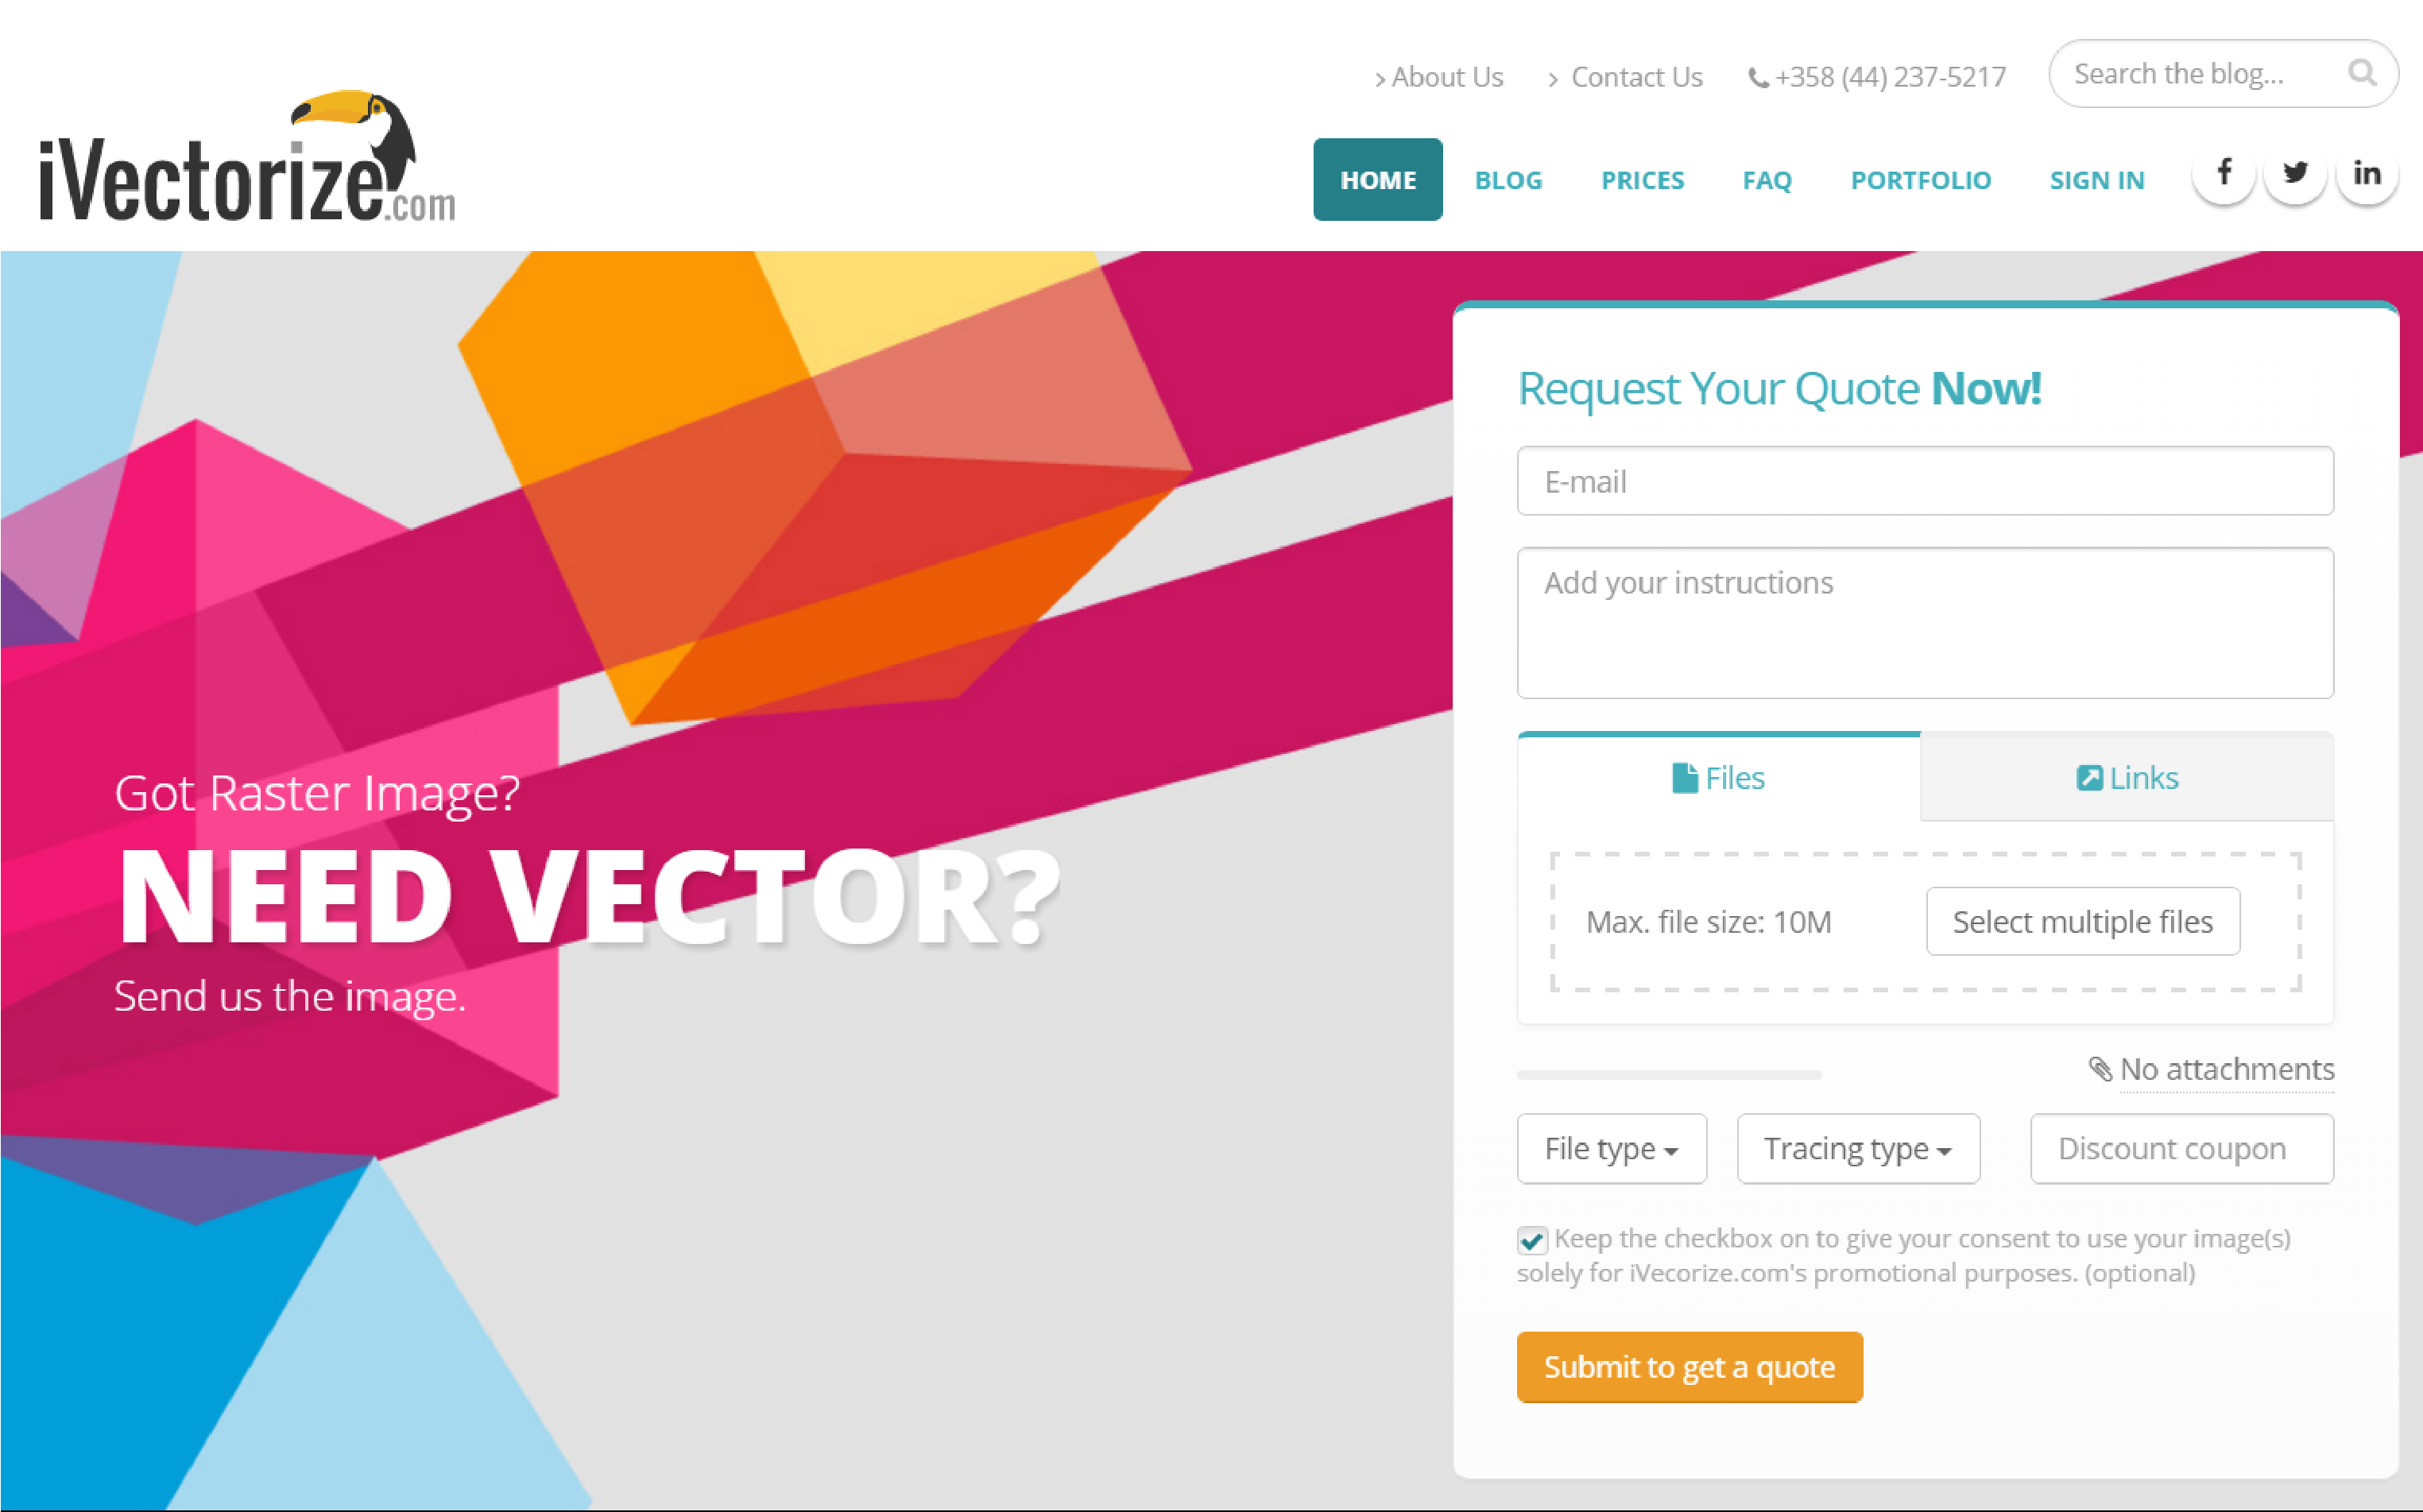 iVectorize.com website homepage screenshot